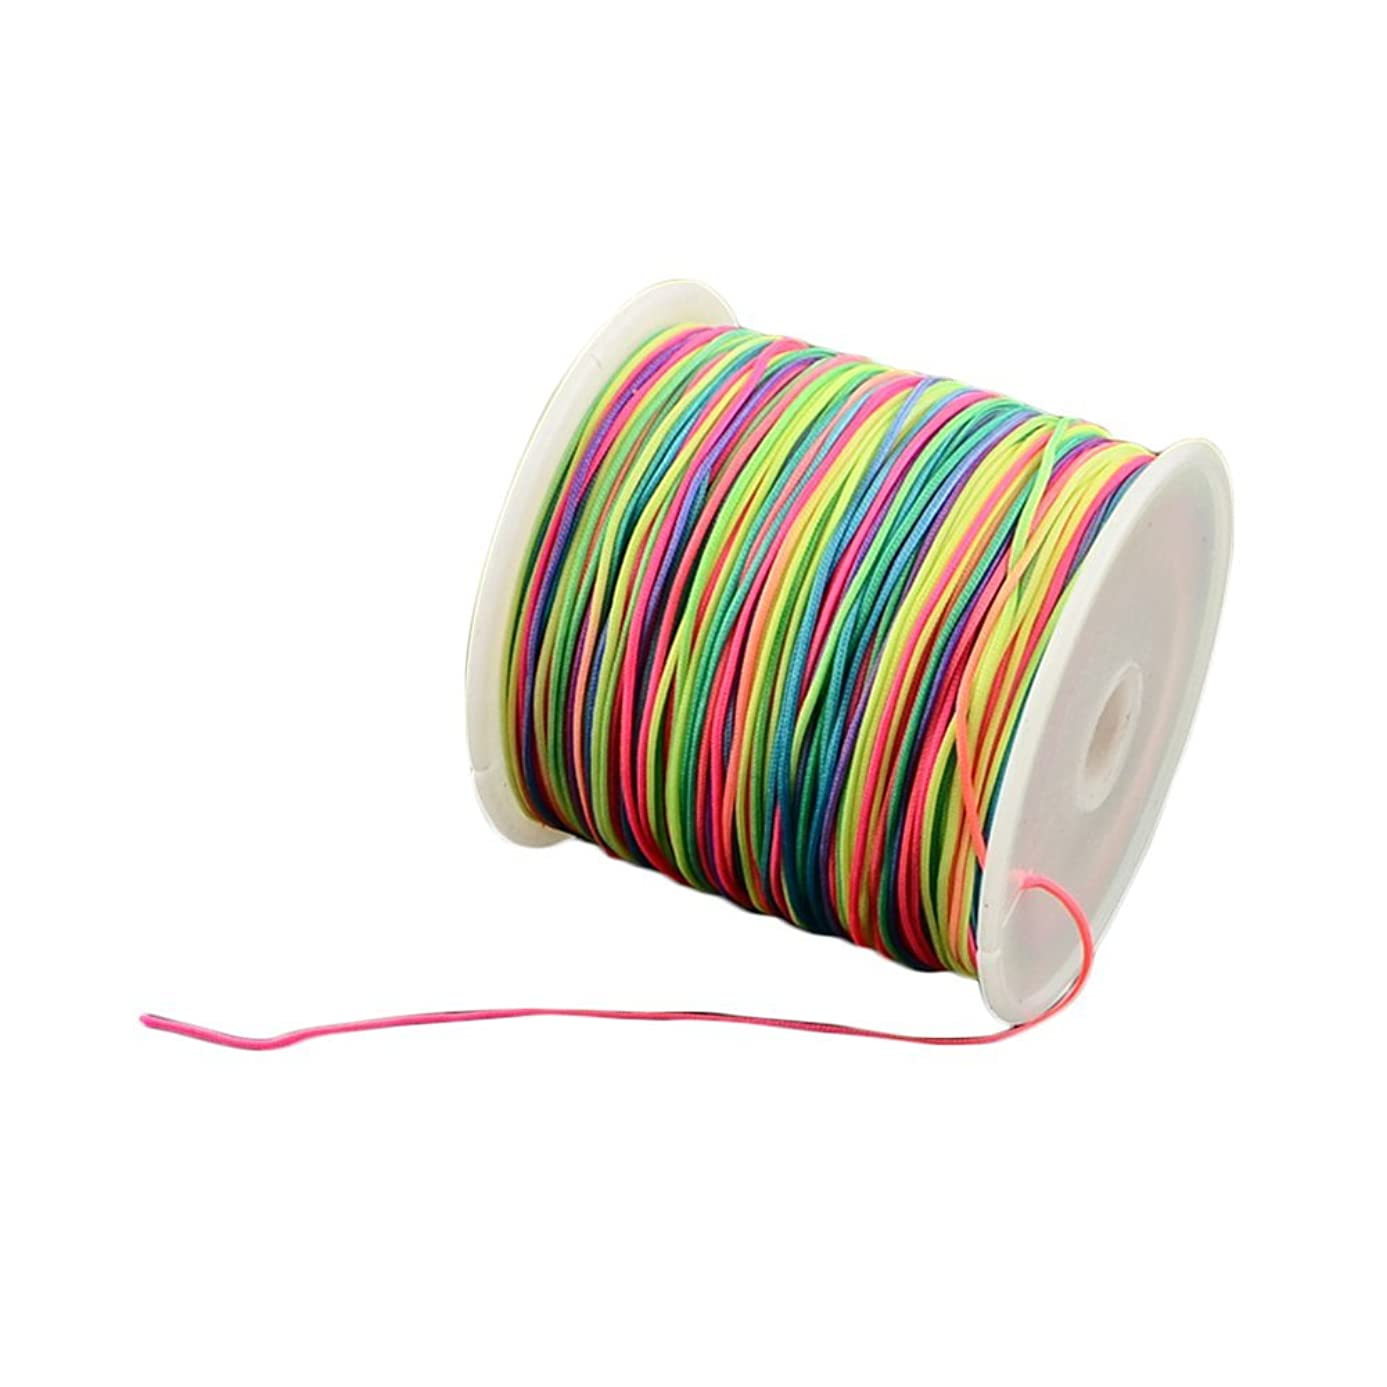 arricraft 1 Roll 0.5mm Braided Nylon Cord Colorful Imitation Silk String Thread for DIY Craft and Jewelry Making